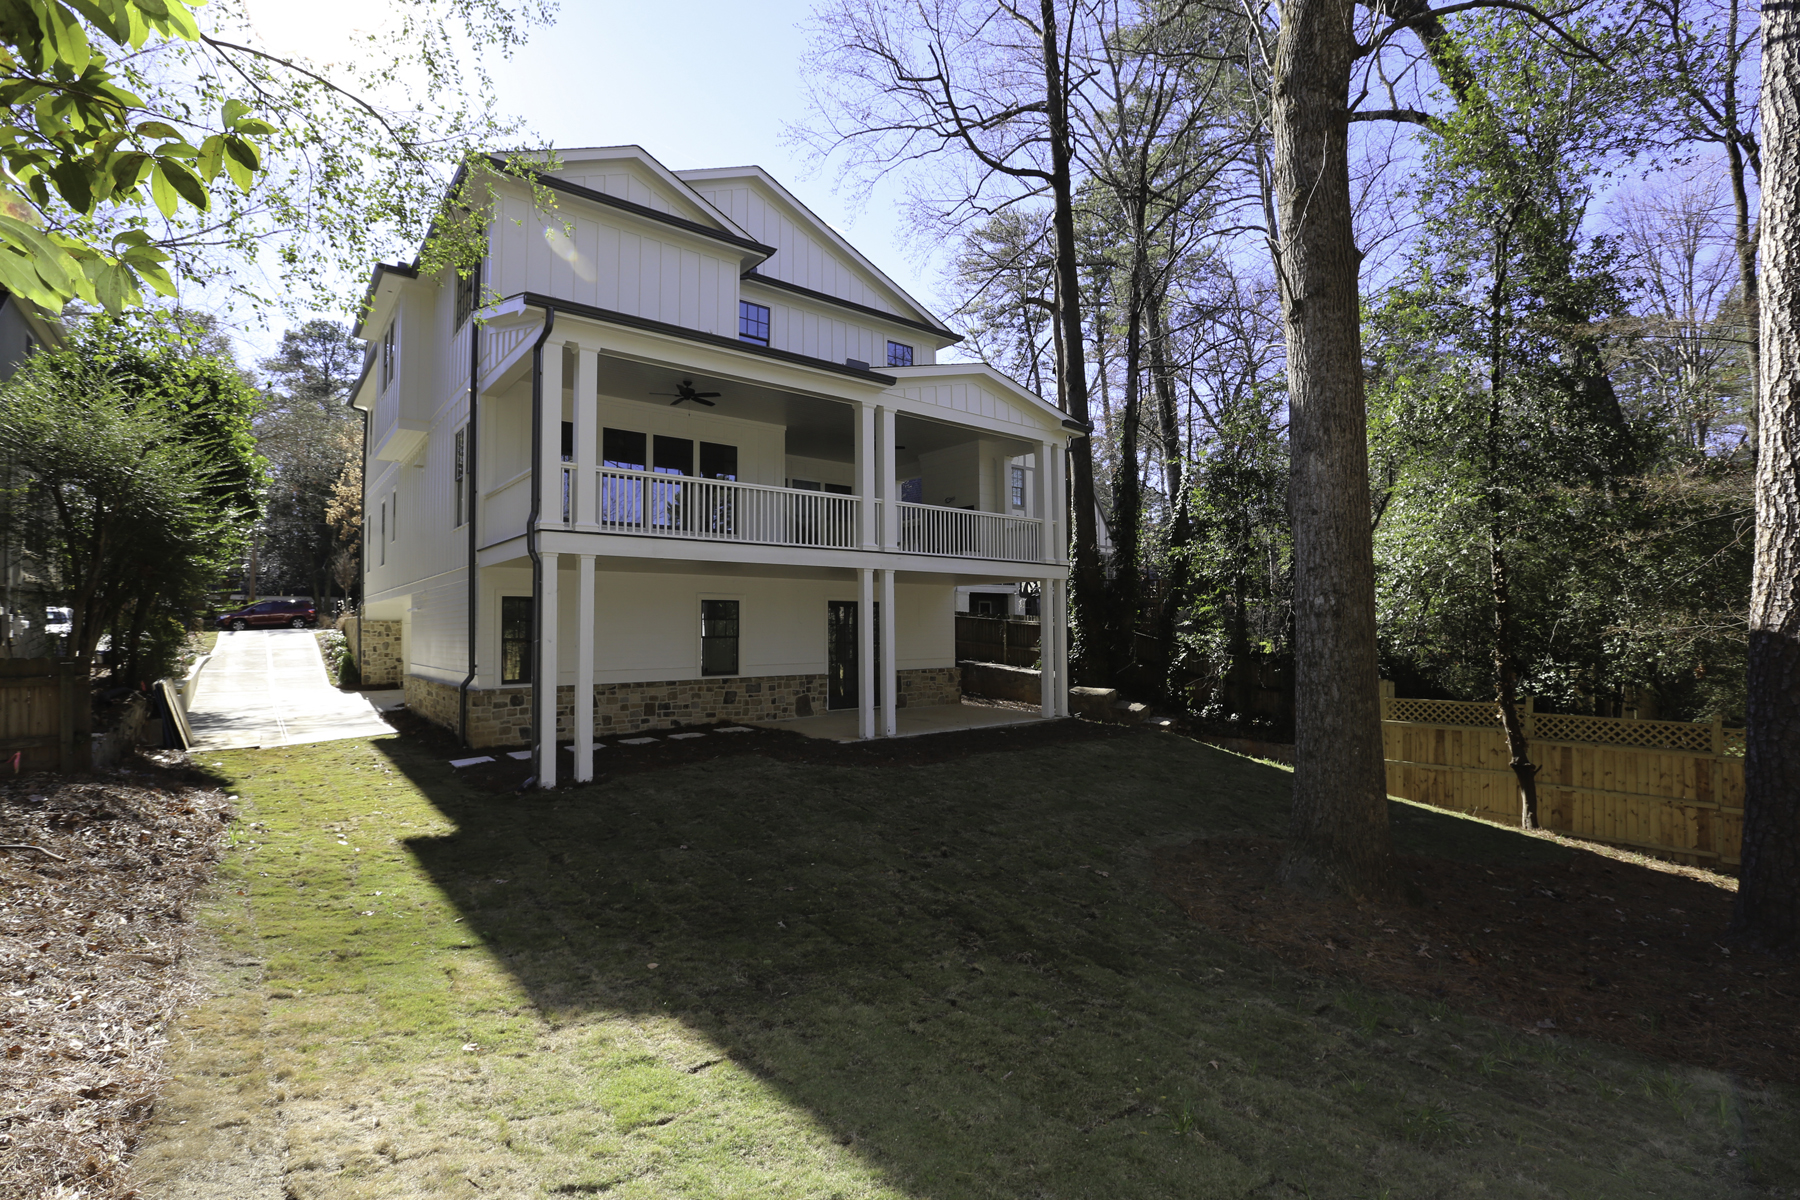 Additional photo for property listing at New Construction by JackBilt Homes. 870 Wildwood Road NE Atlanta, Georgia 30324 United States